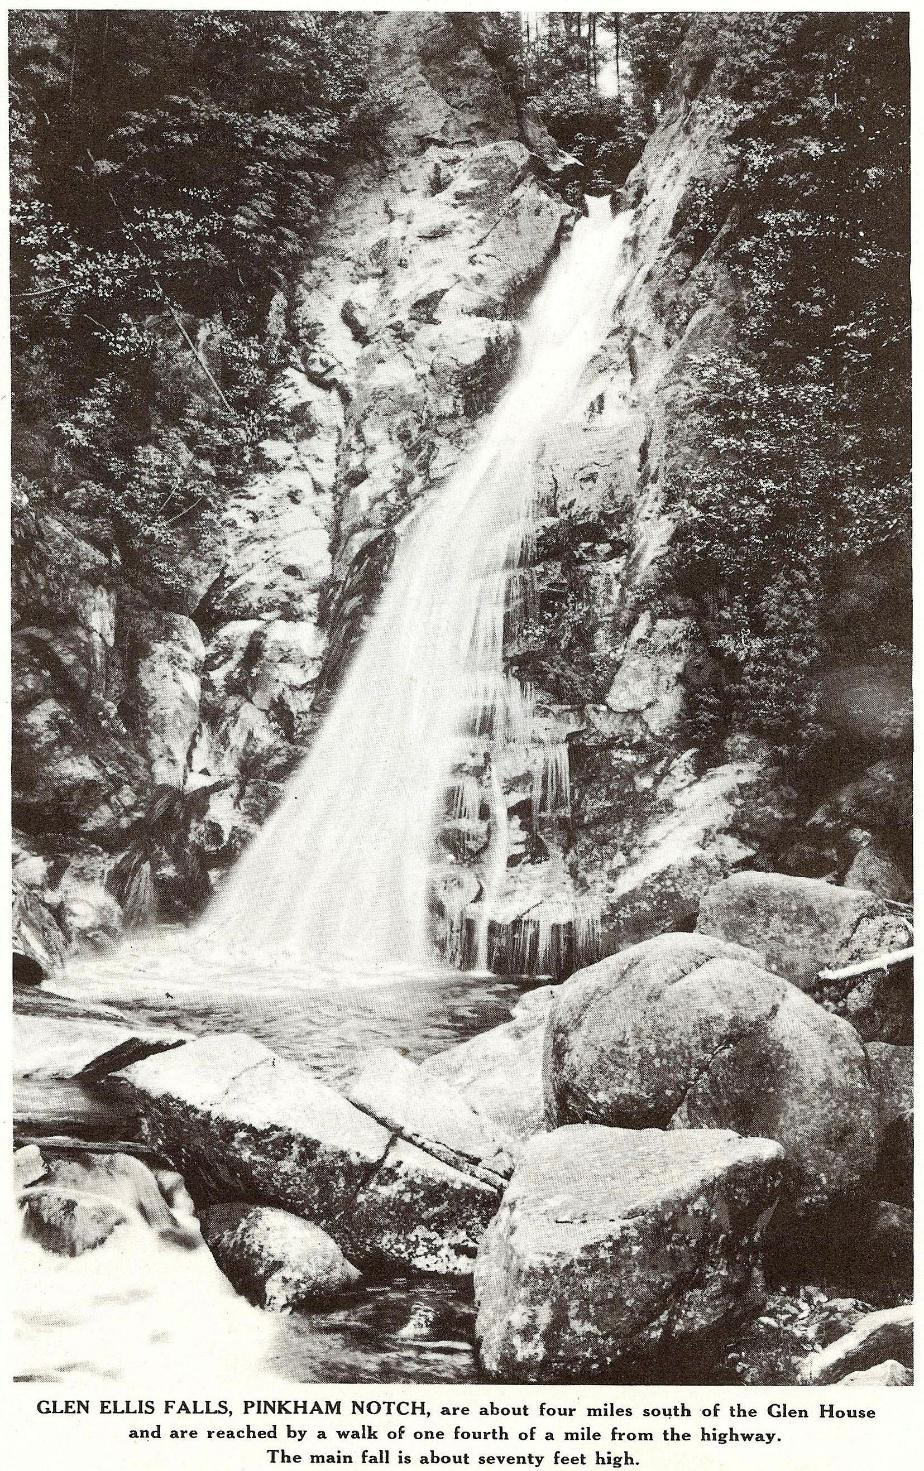 Glen Ellis Falls, Pinkham Notch